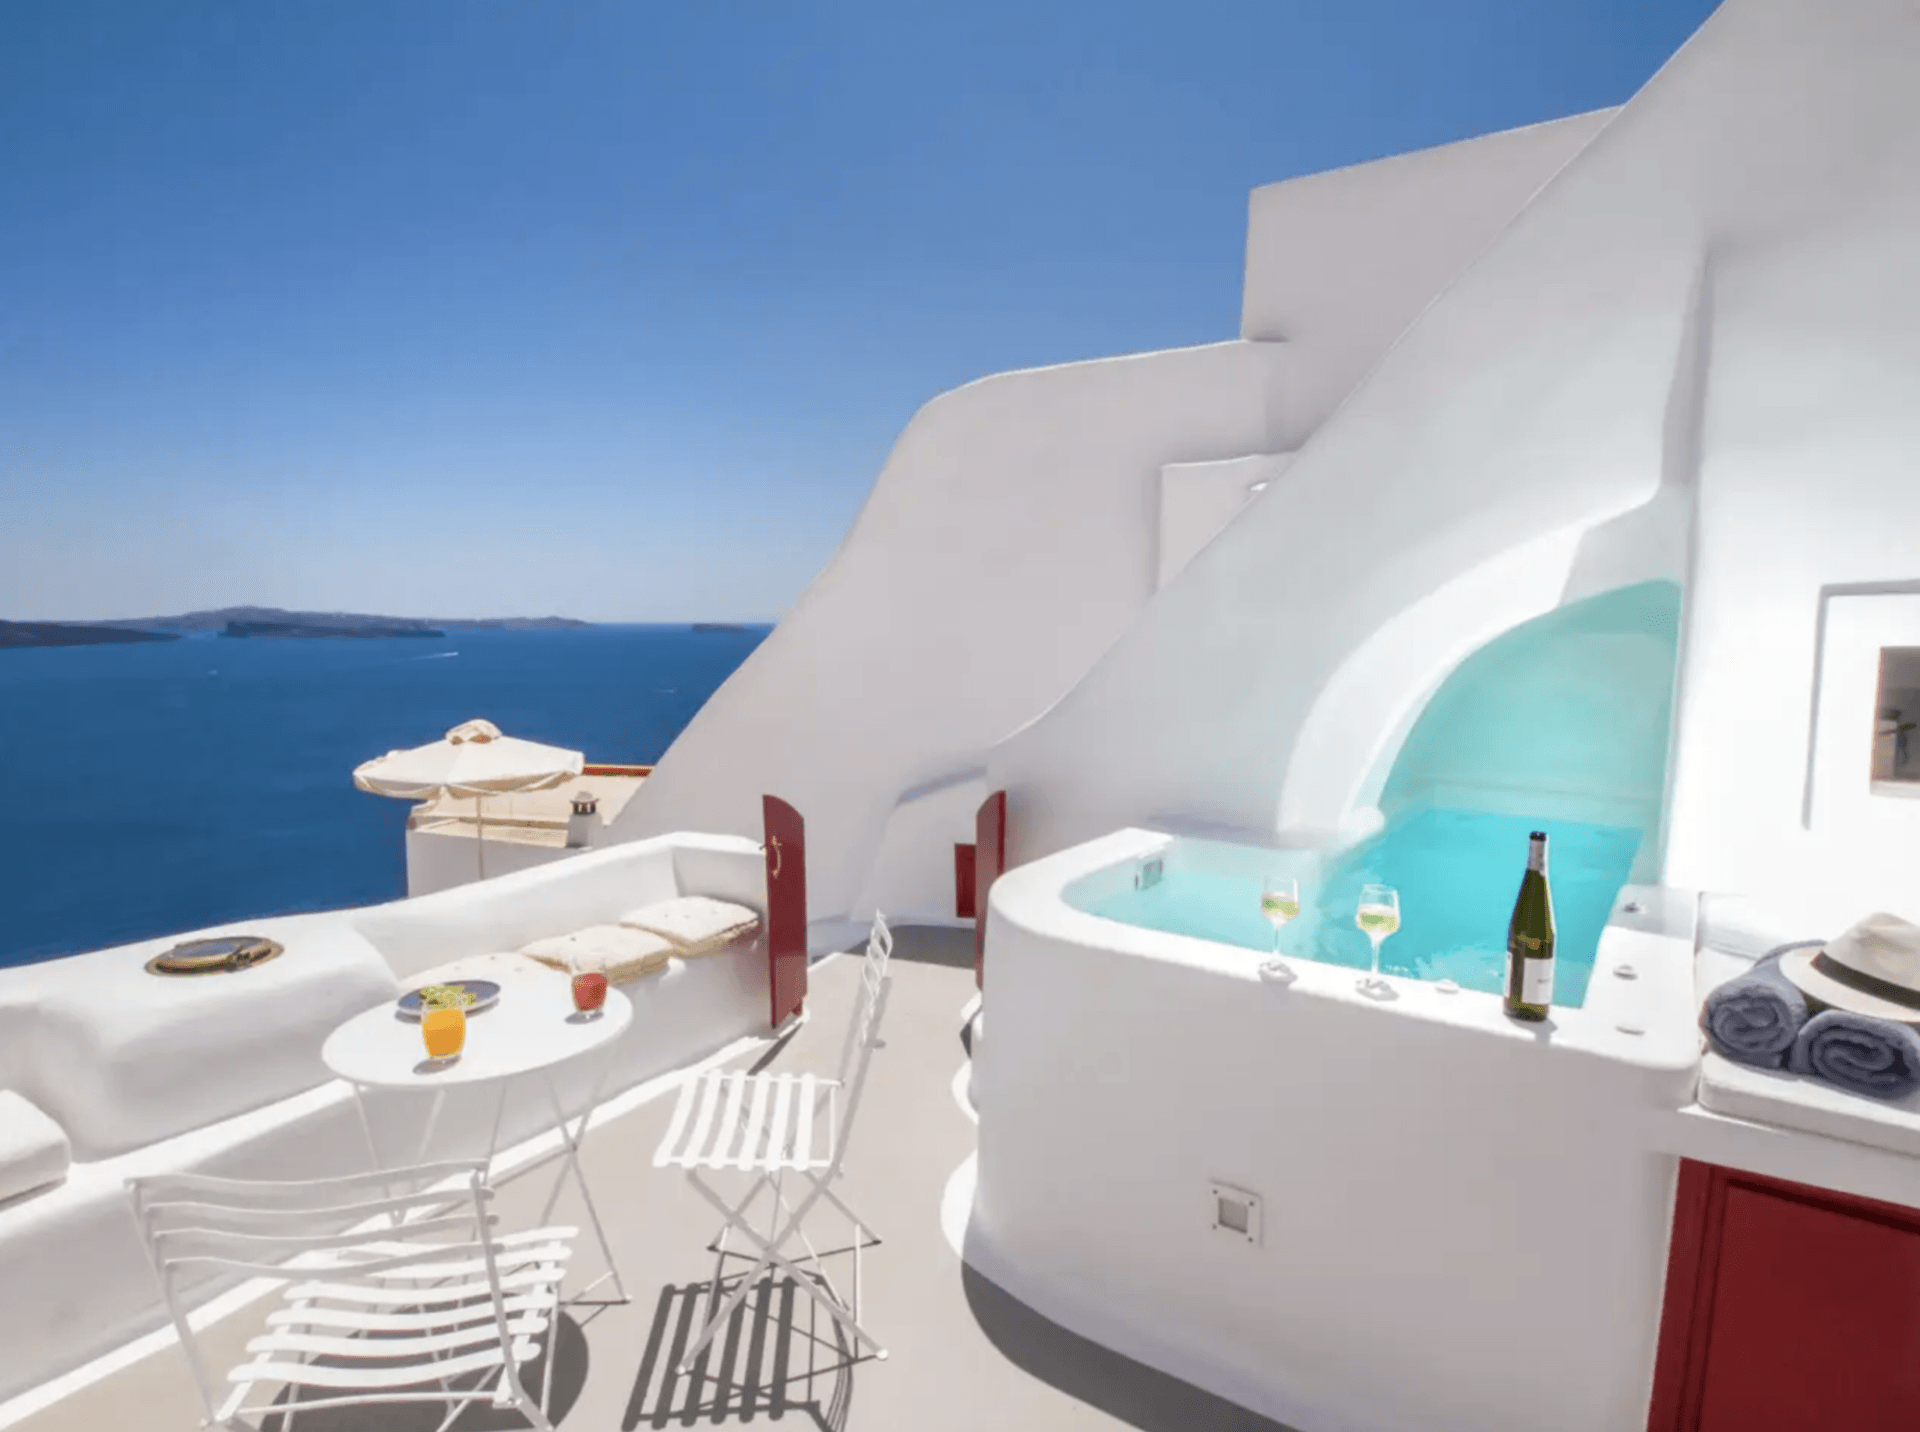 The Best Airbnbs in Europe